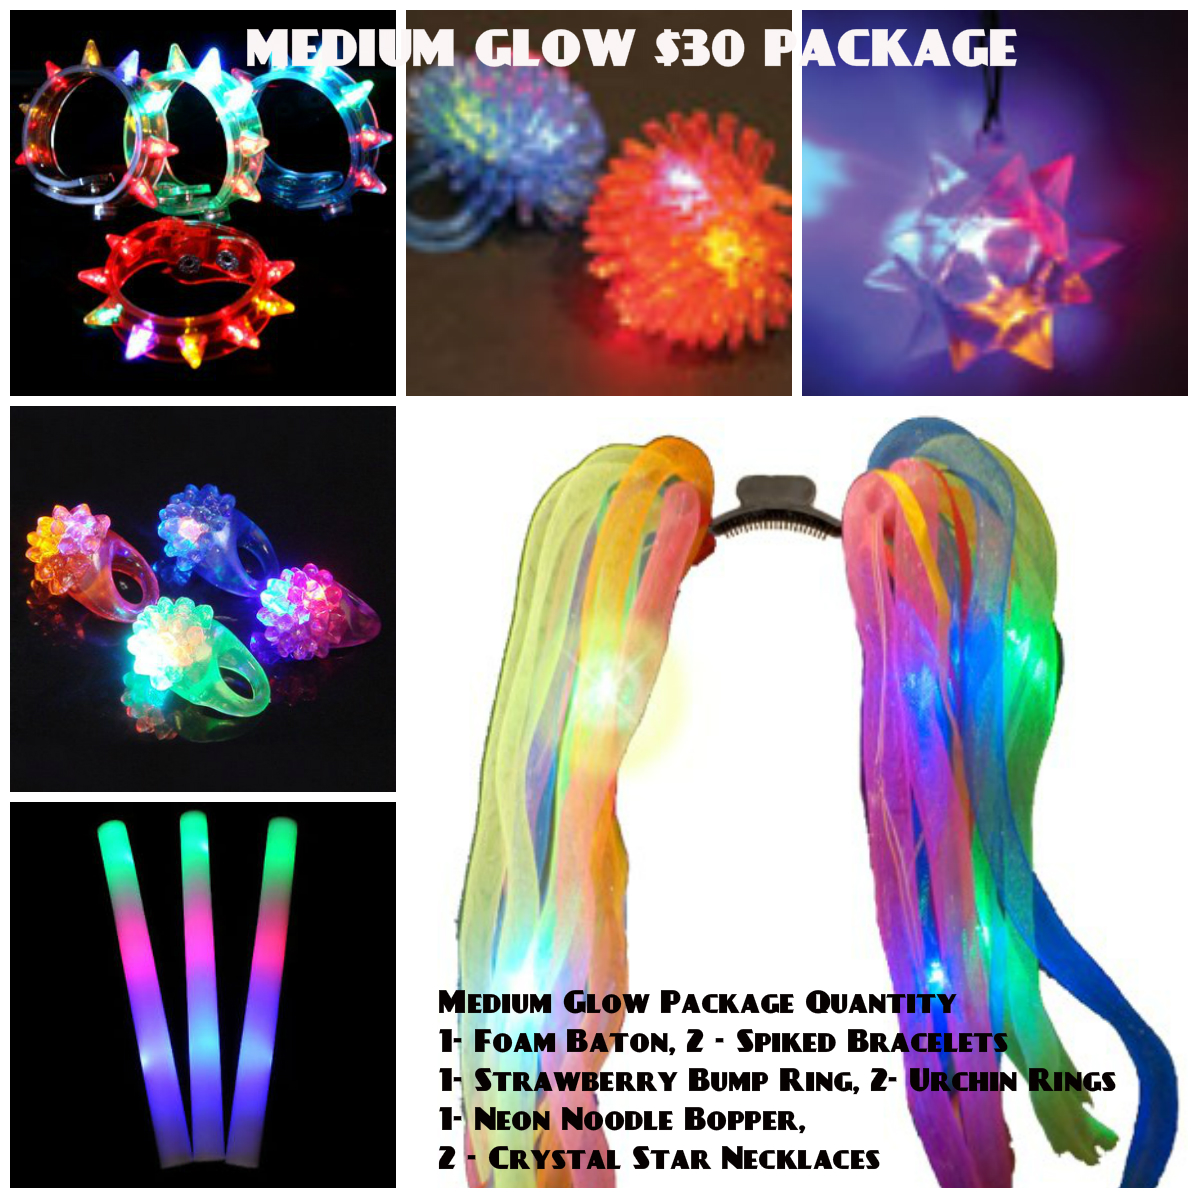 Medium Glow Accessory Package